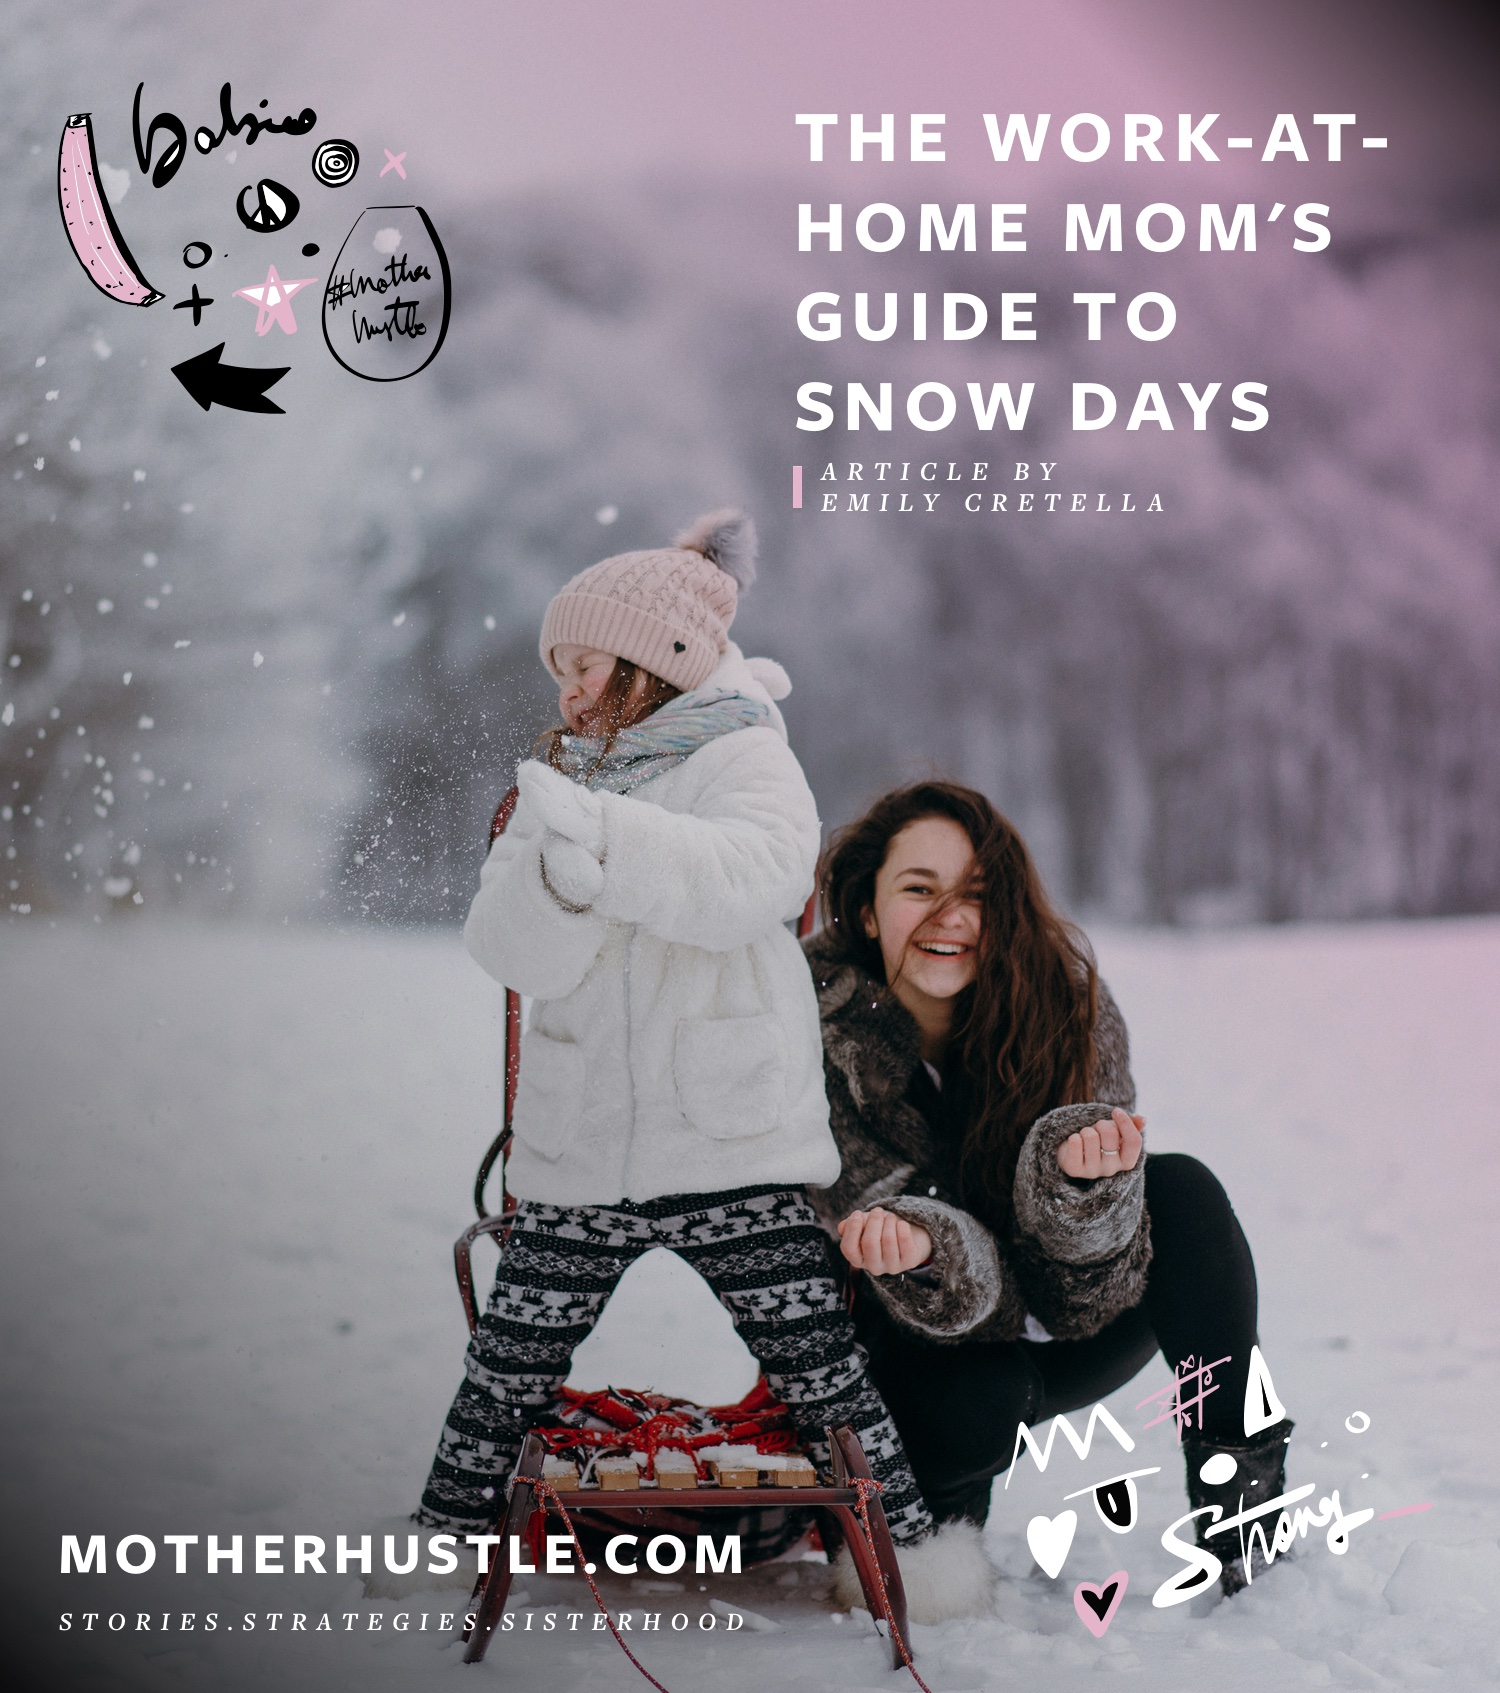 The Work-at-Home Mom's Guide to Snow Days - by Emily Cretella for MotherHustle